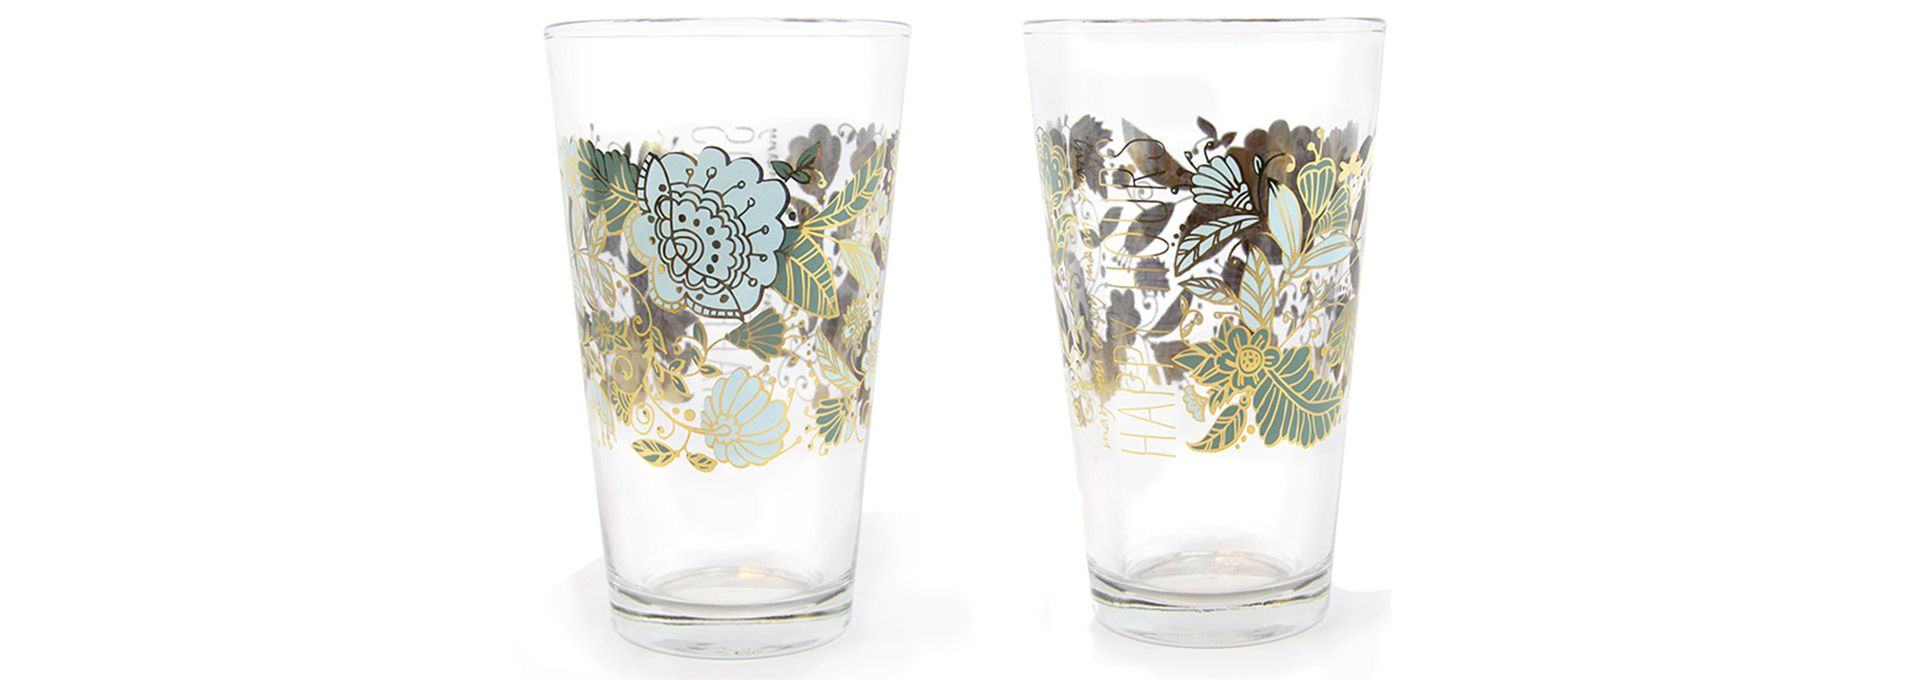 Custom Designed Promotional Glasses & Glassware Seattle